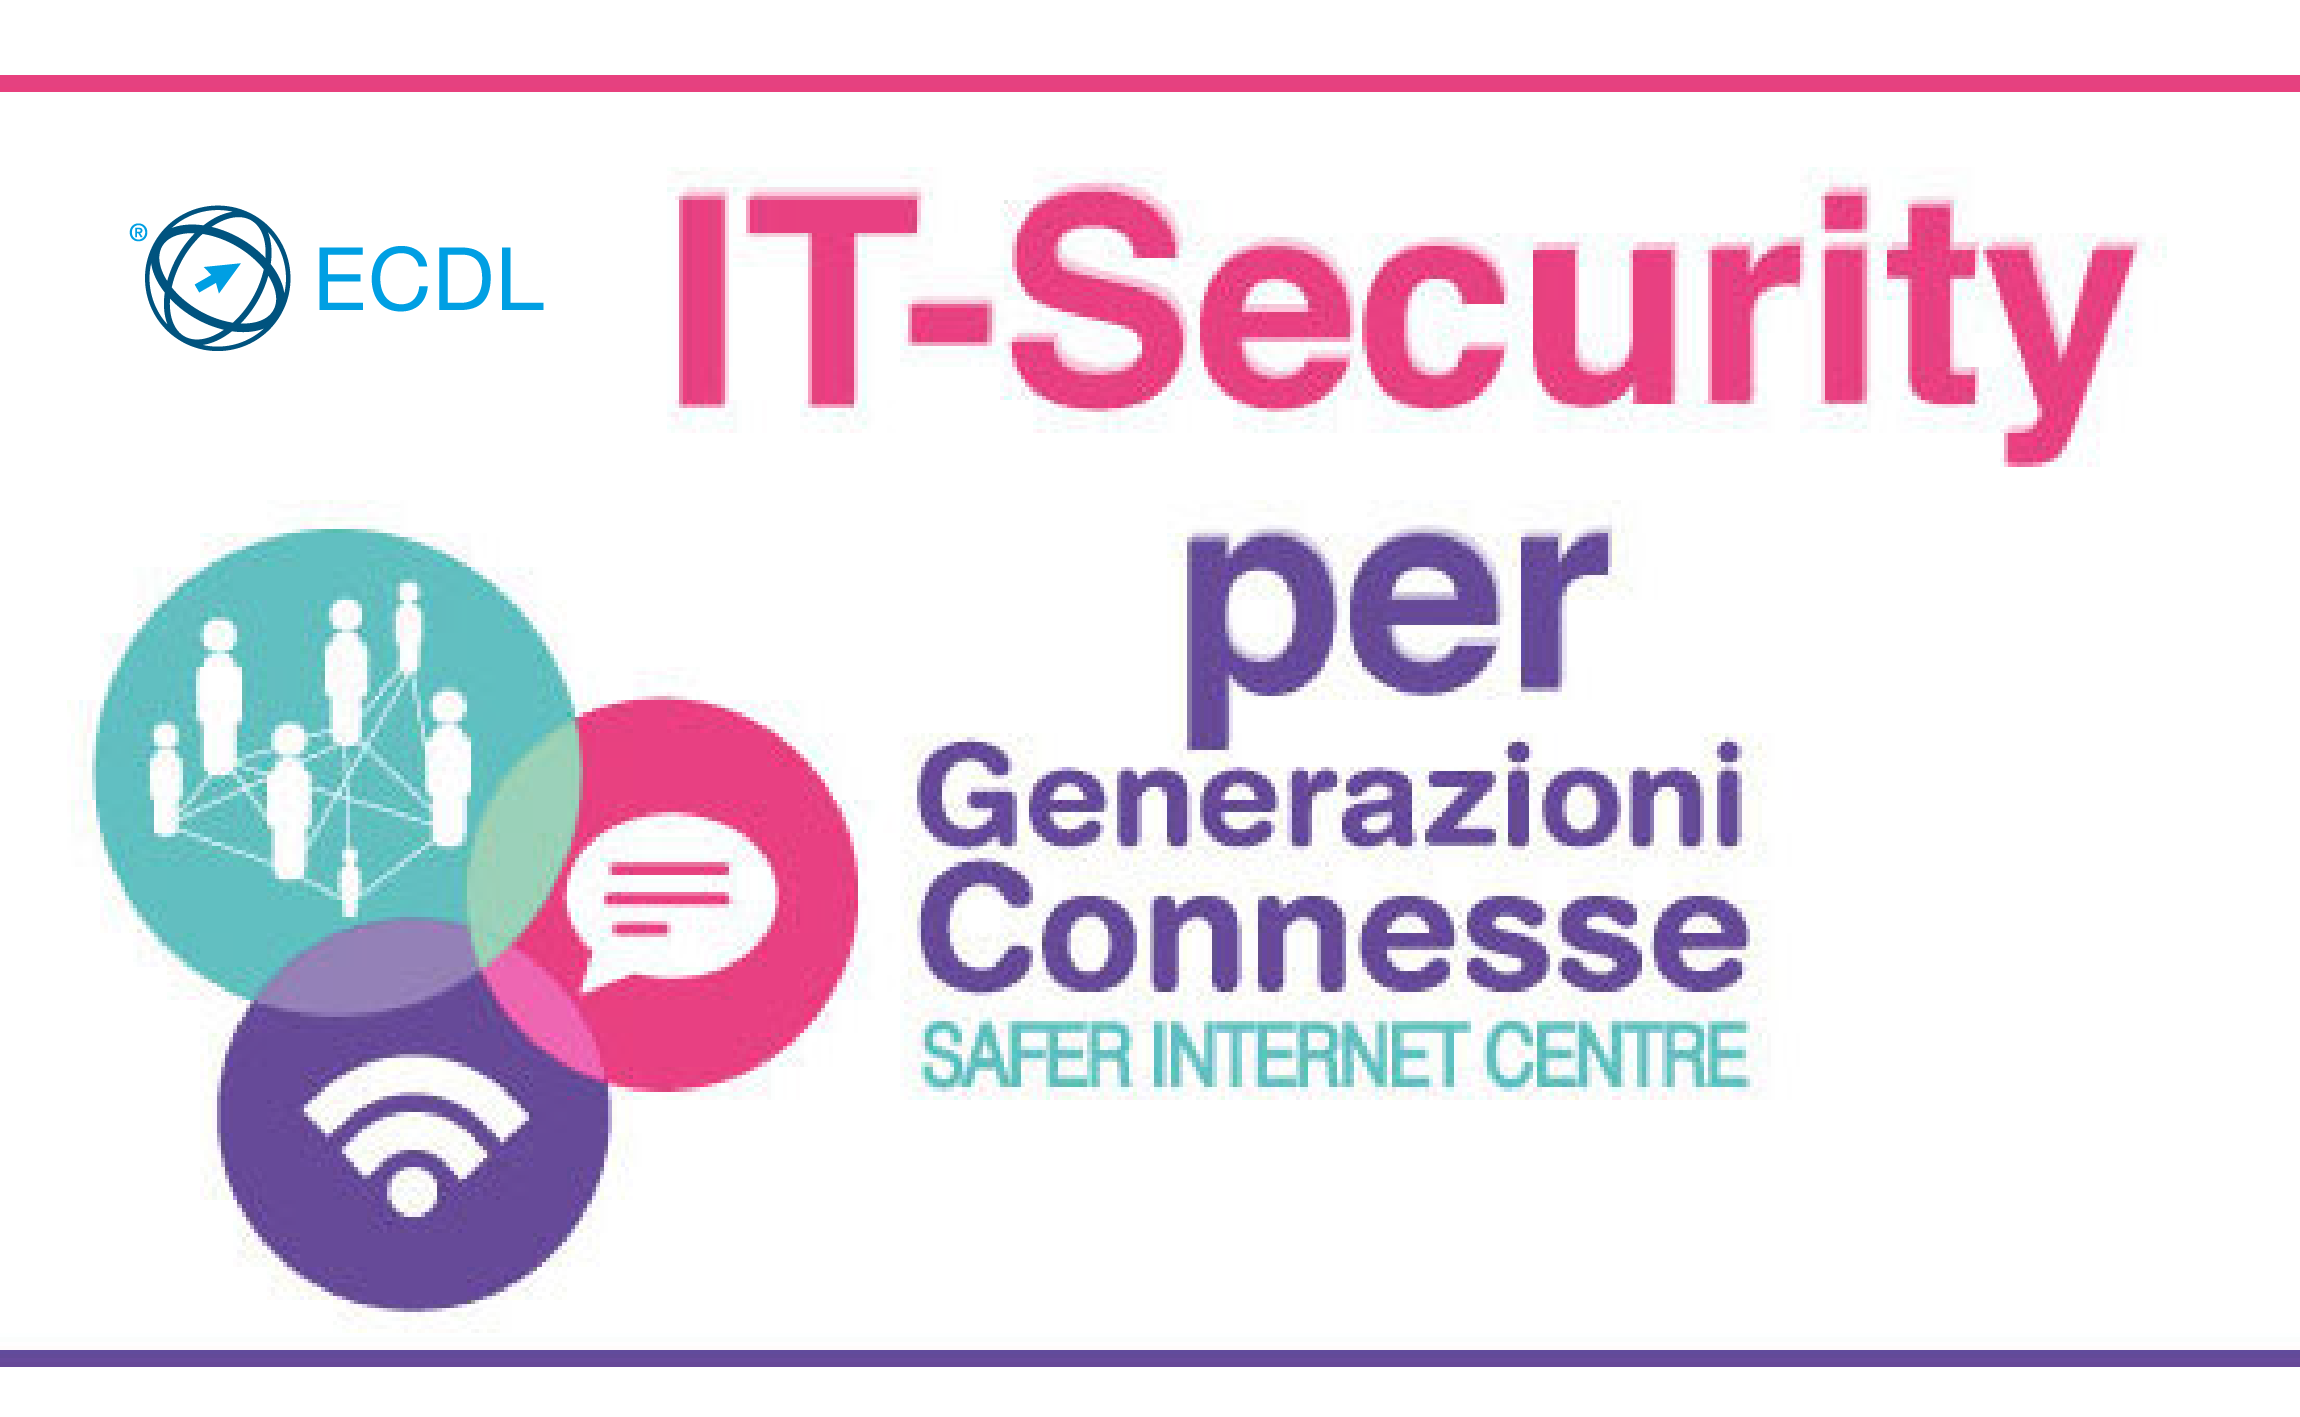 IT-Security per Generazioni Connesse